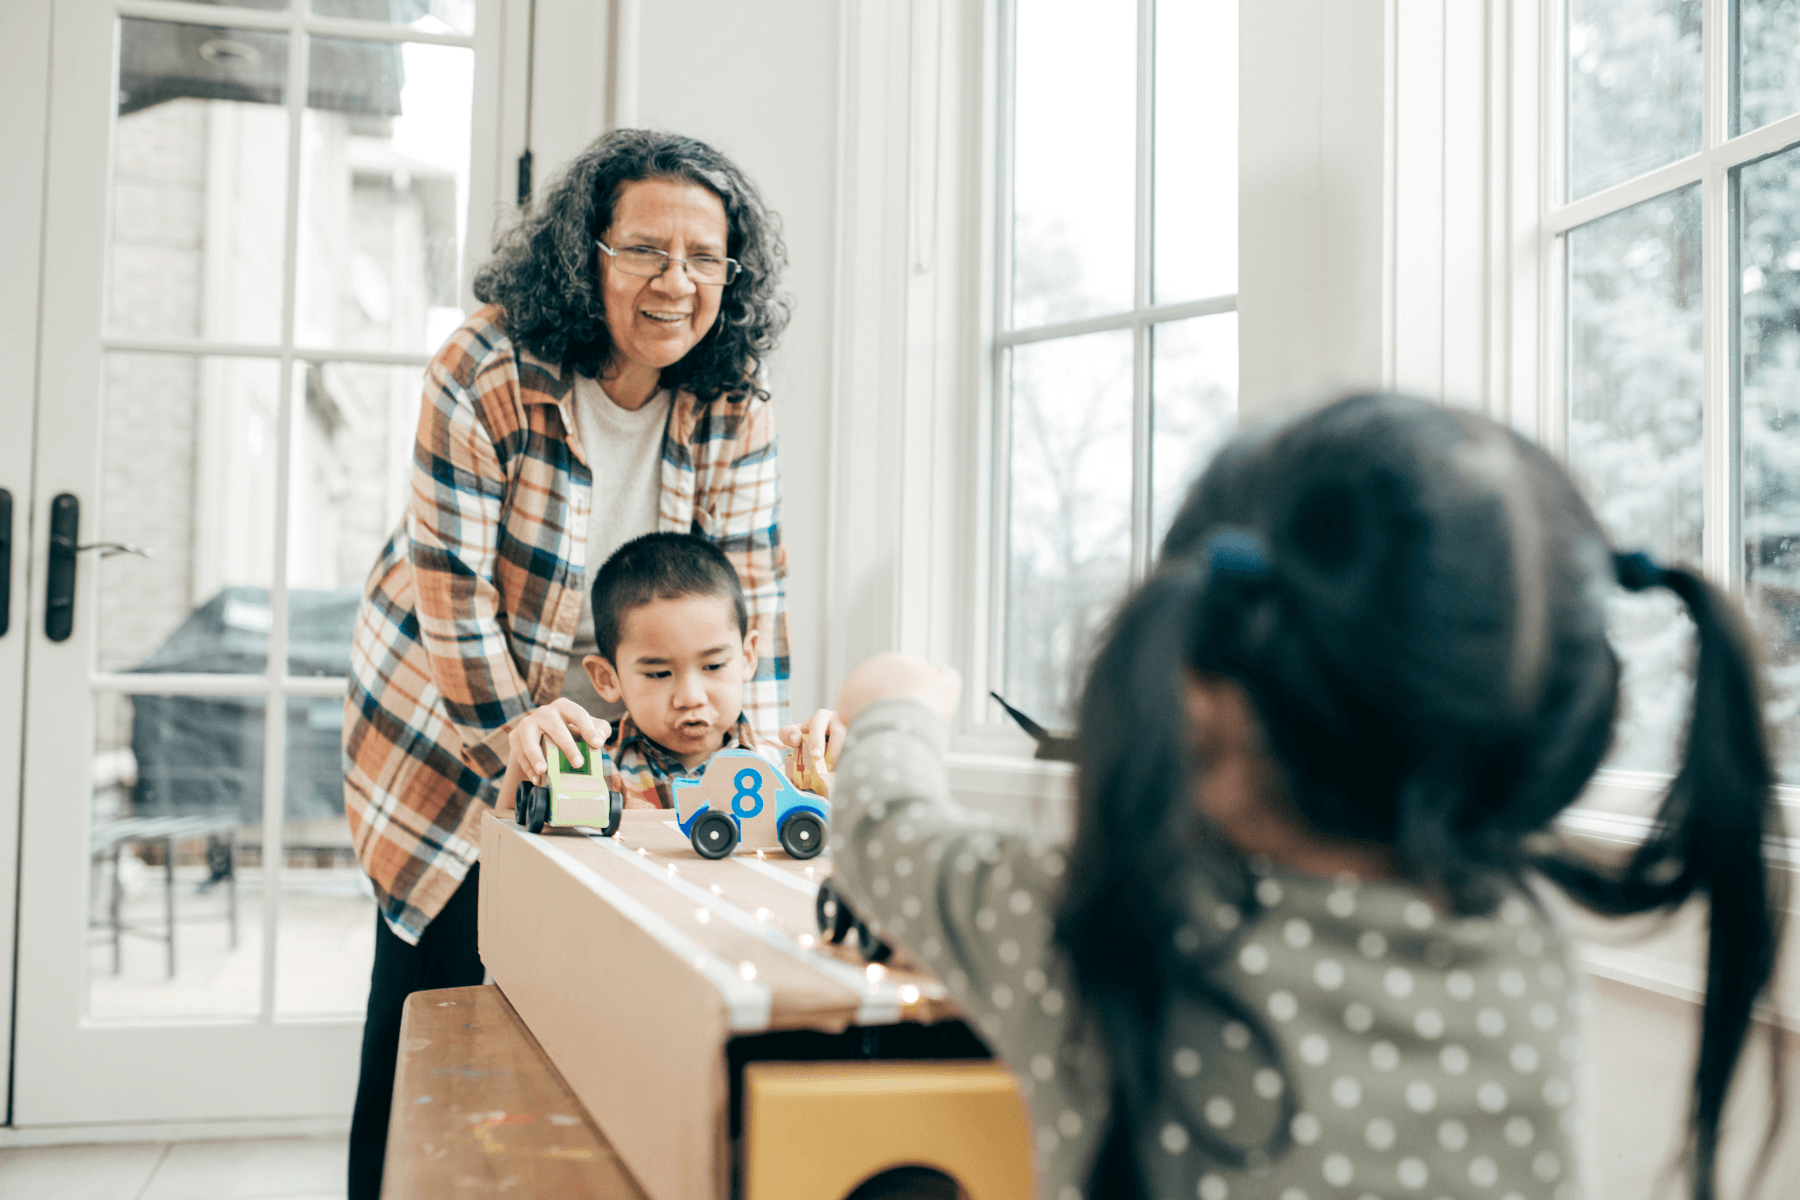 Collinwood: 5 Toys To Buy Your Grandkids